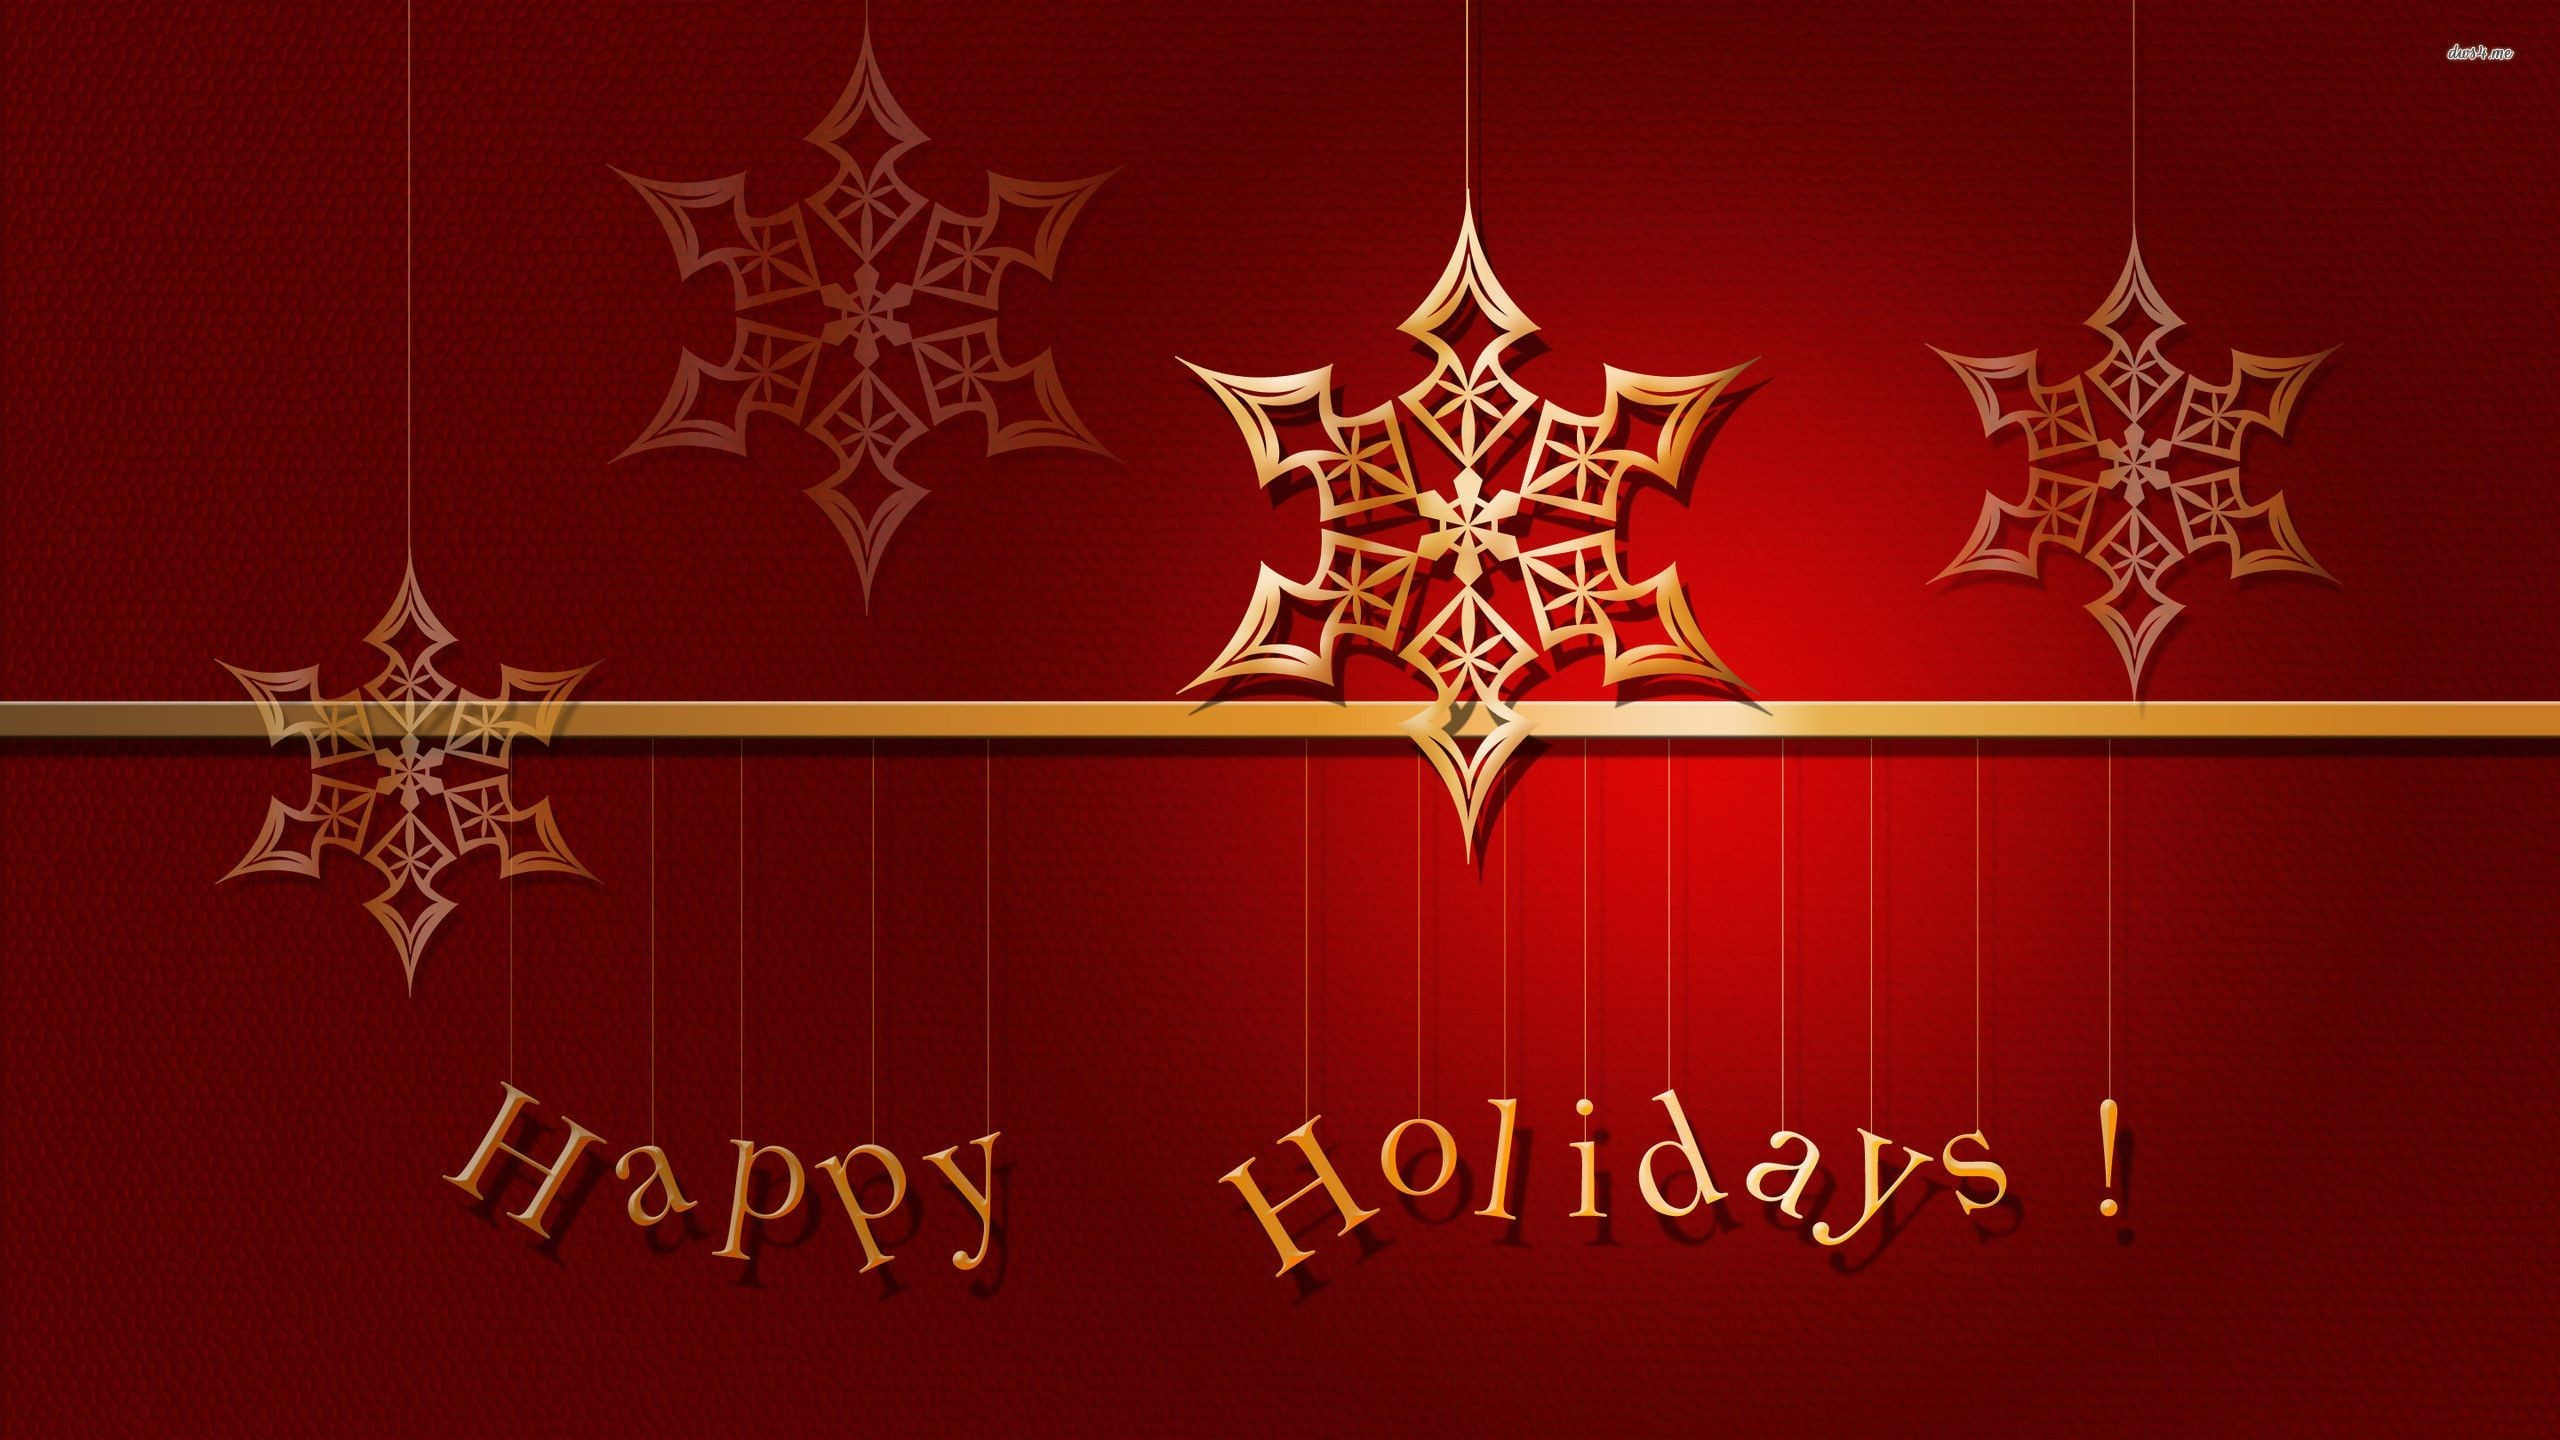 2560x1440 Happy Holiday Wallpapers - Wallpaper Cave